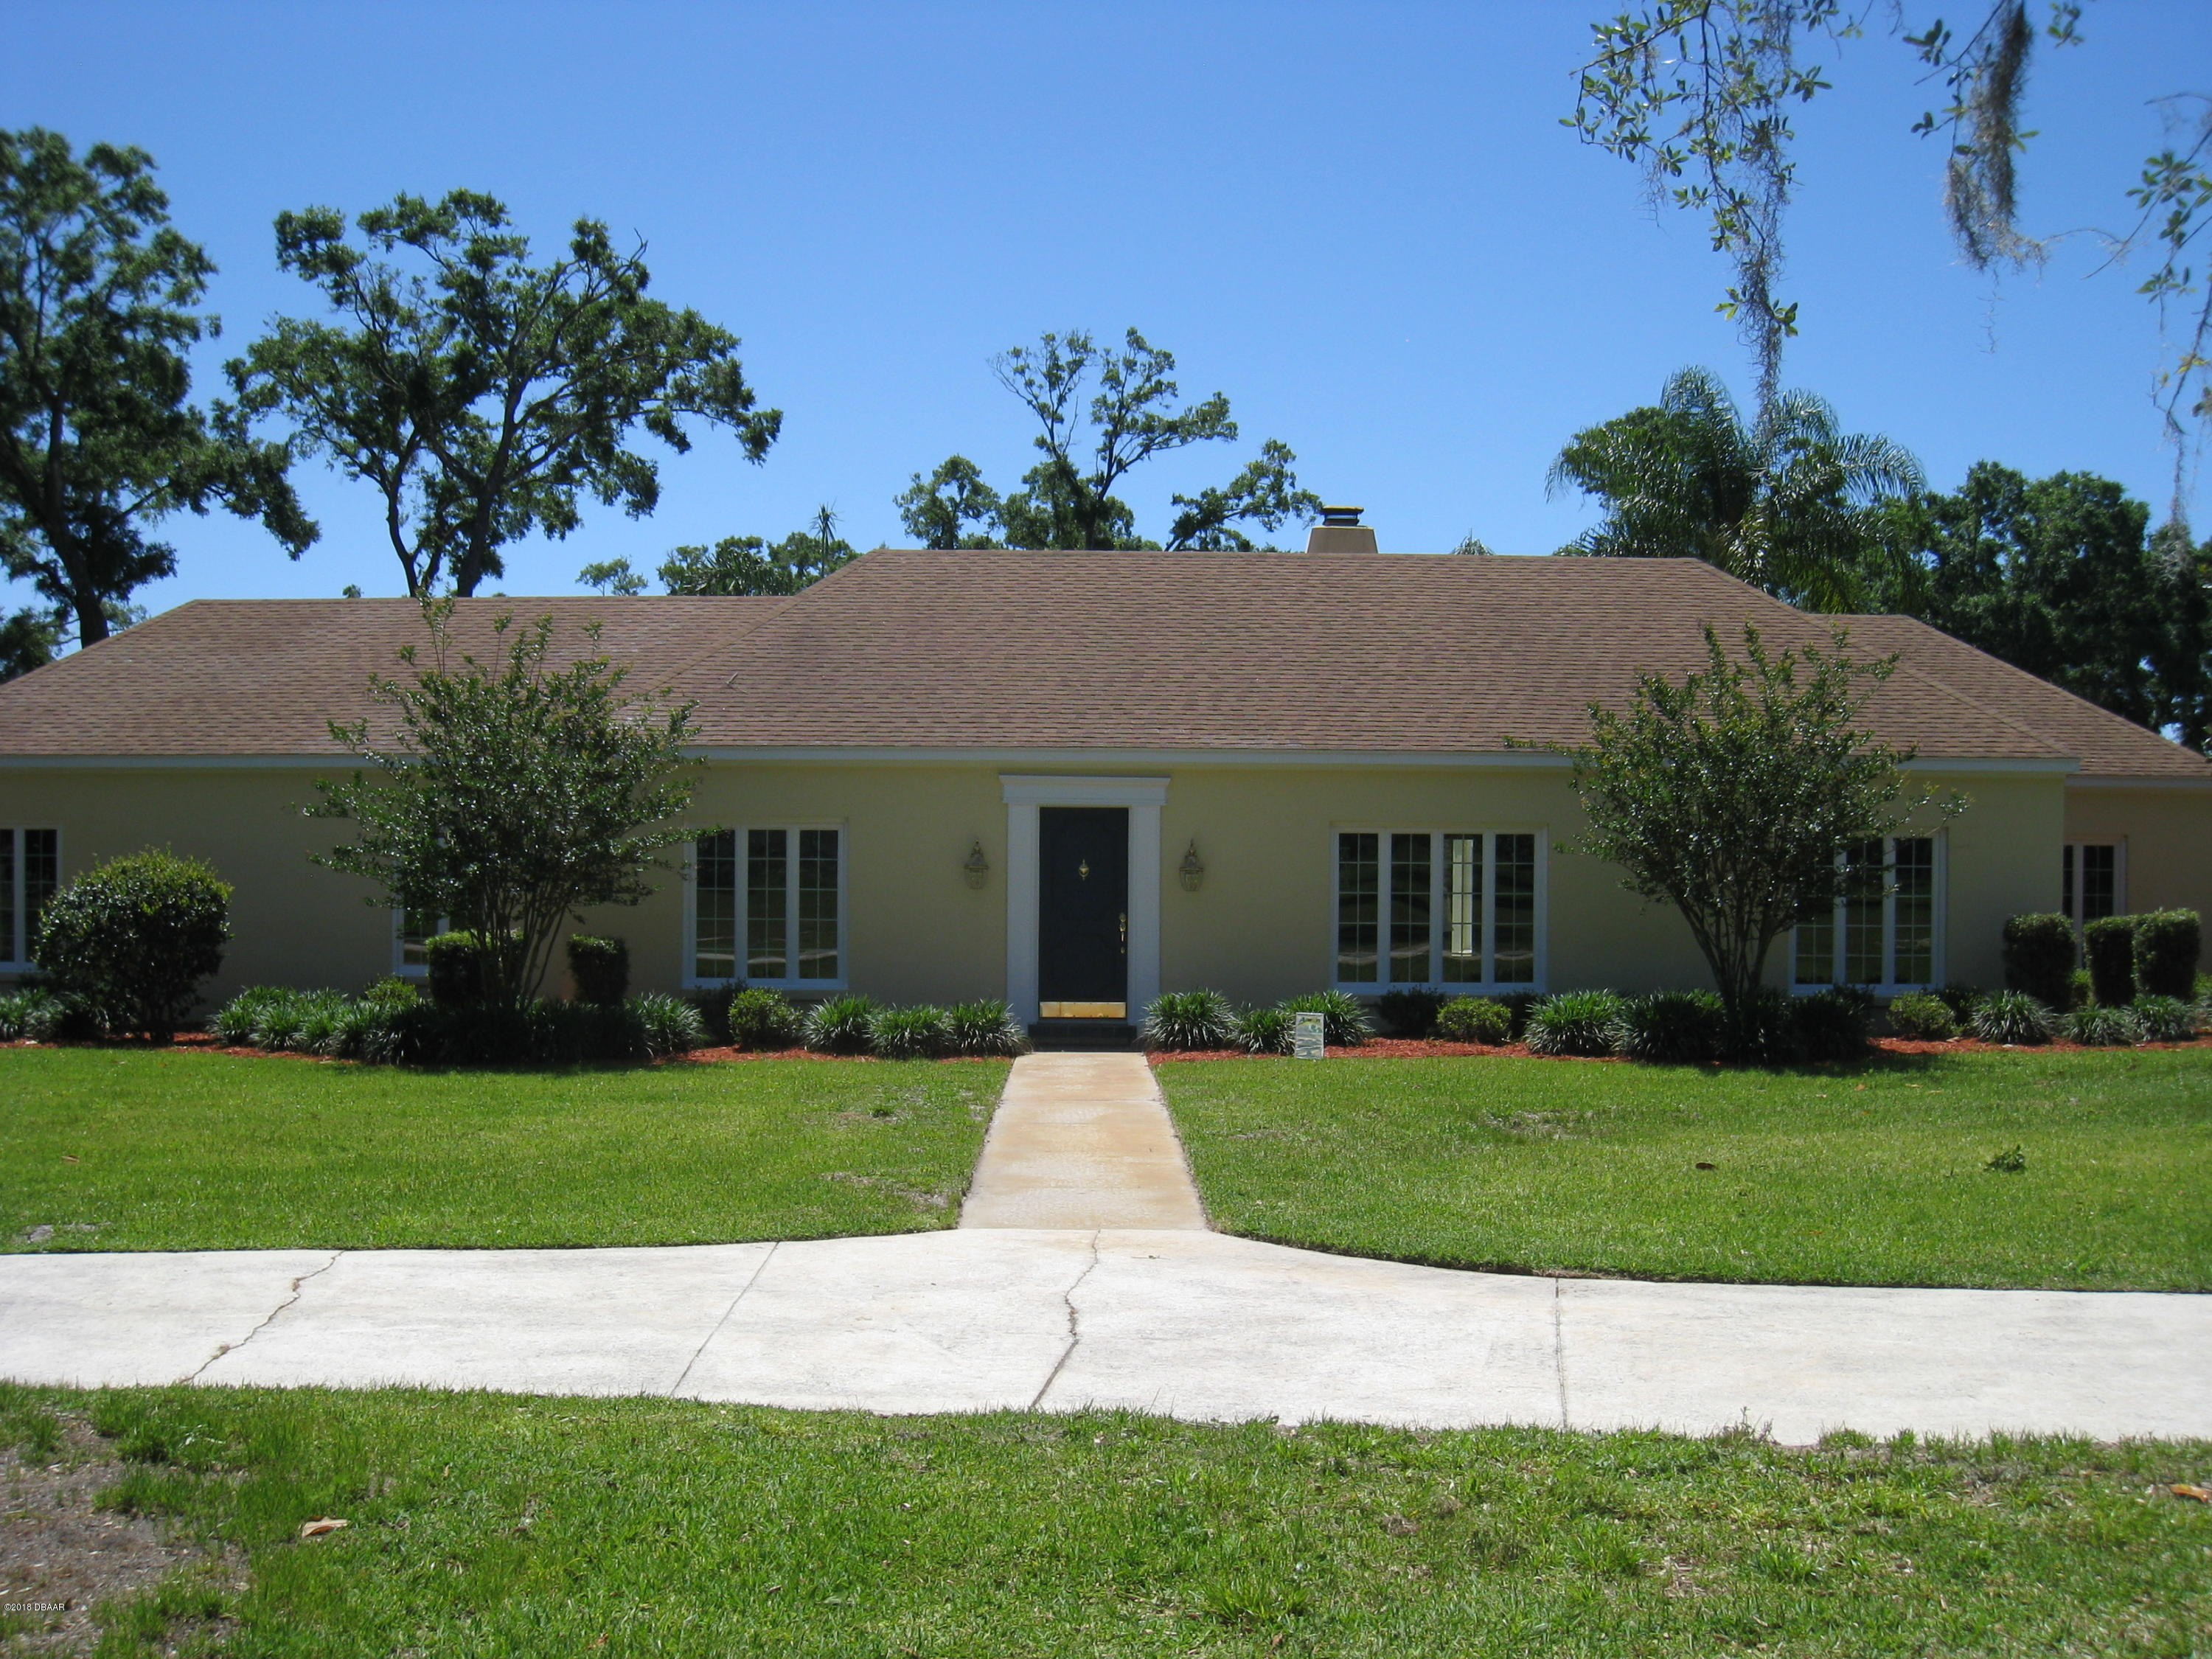 Photo of home for sale at 1700 WhippoorwillLane, Deland FL